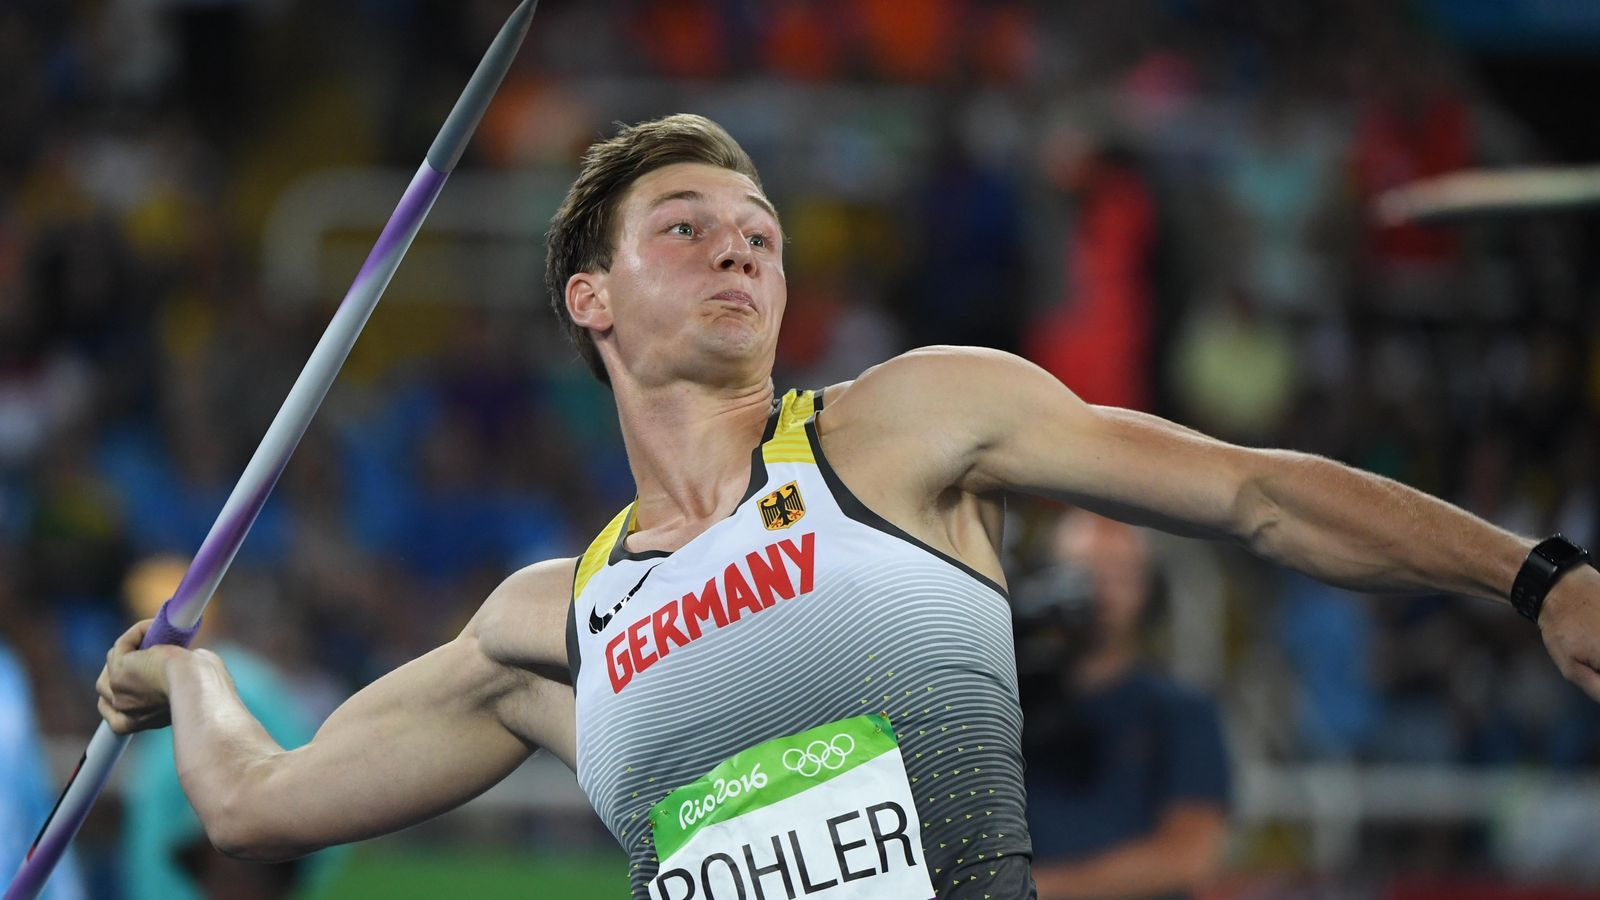 Olympics 2016 Thomas Röhler wins gold in men's javelin